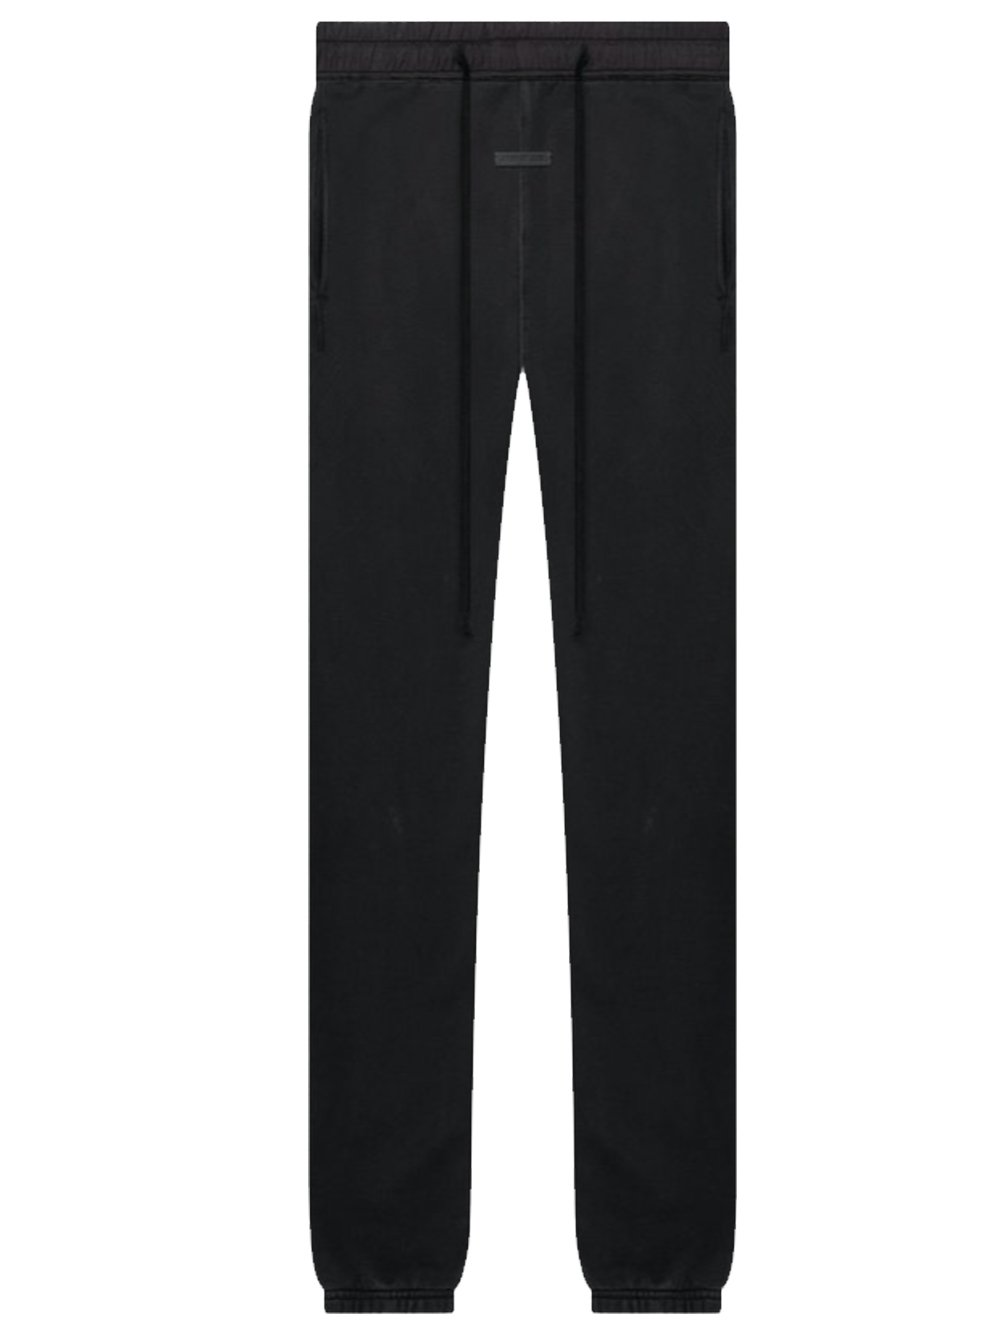 FEAR OF GOD Vintage Track Pant Black